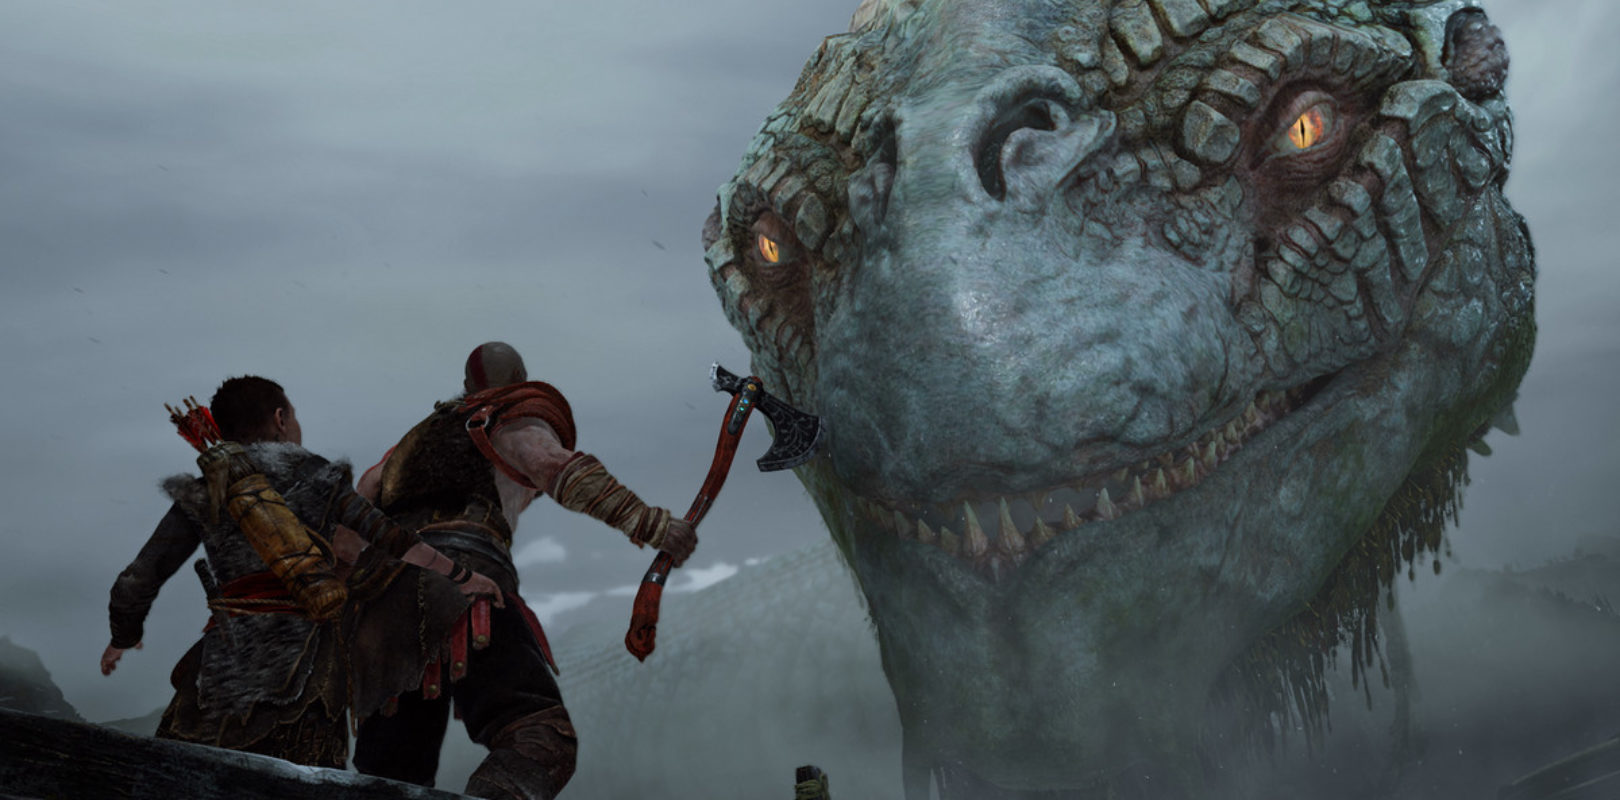 God Of War Trophies Guide: All Trophies, How To Get 100